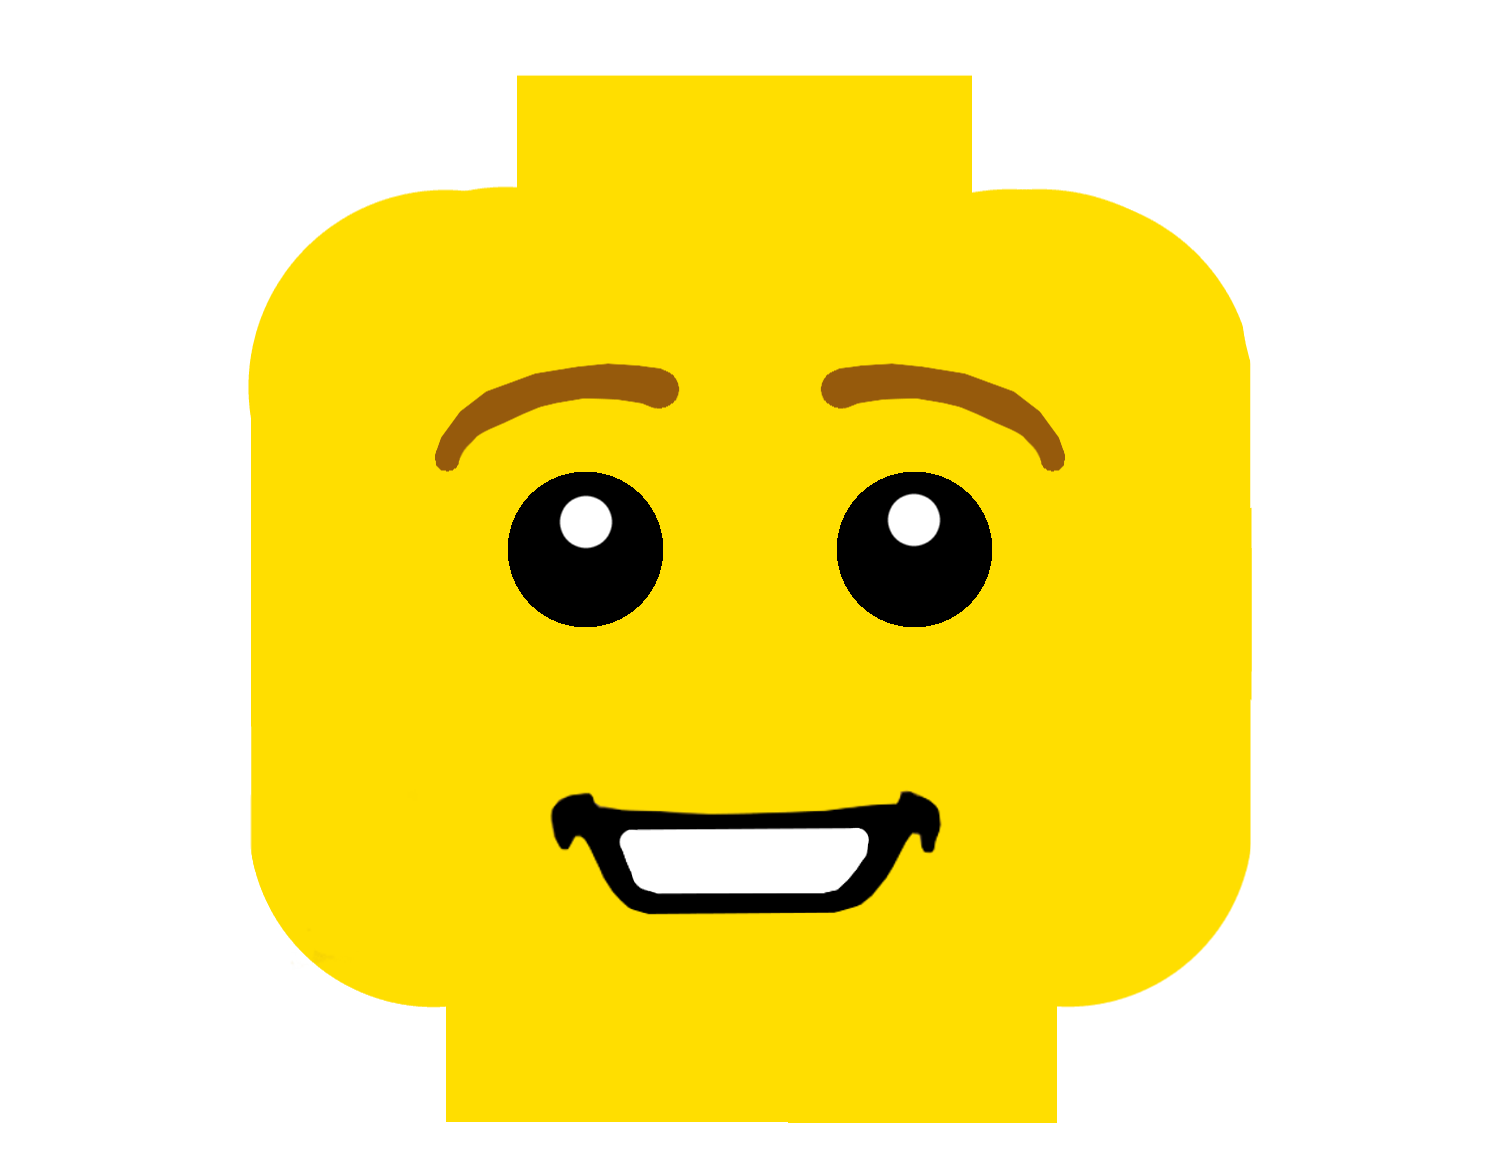 Lego head png. Bricks or not